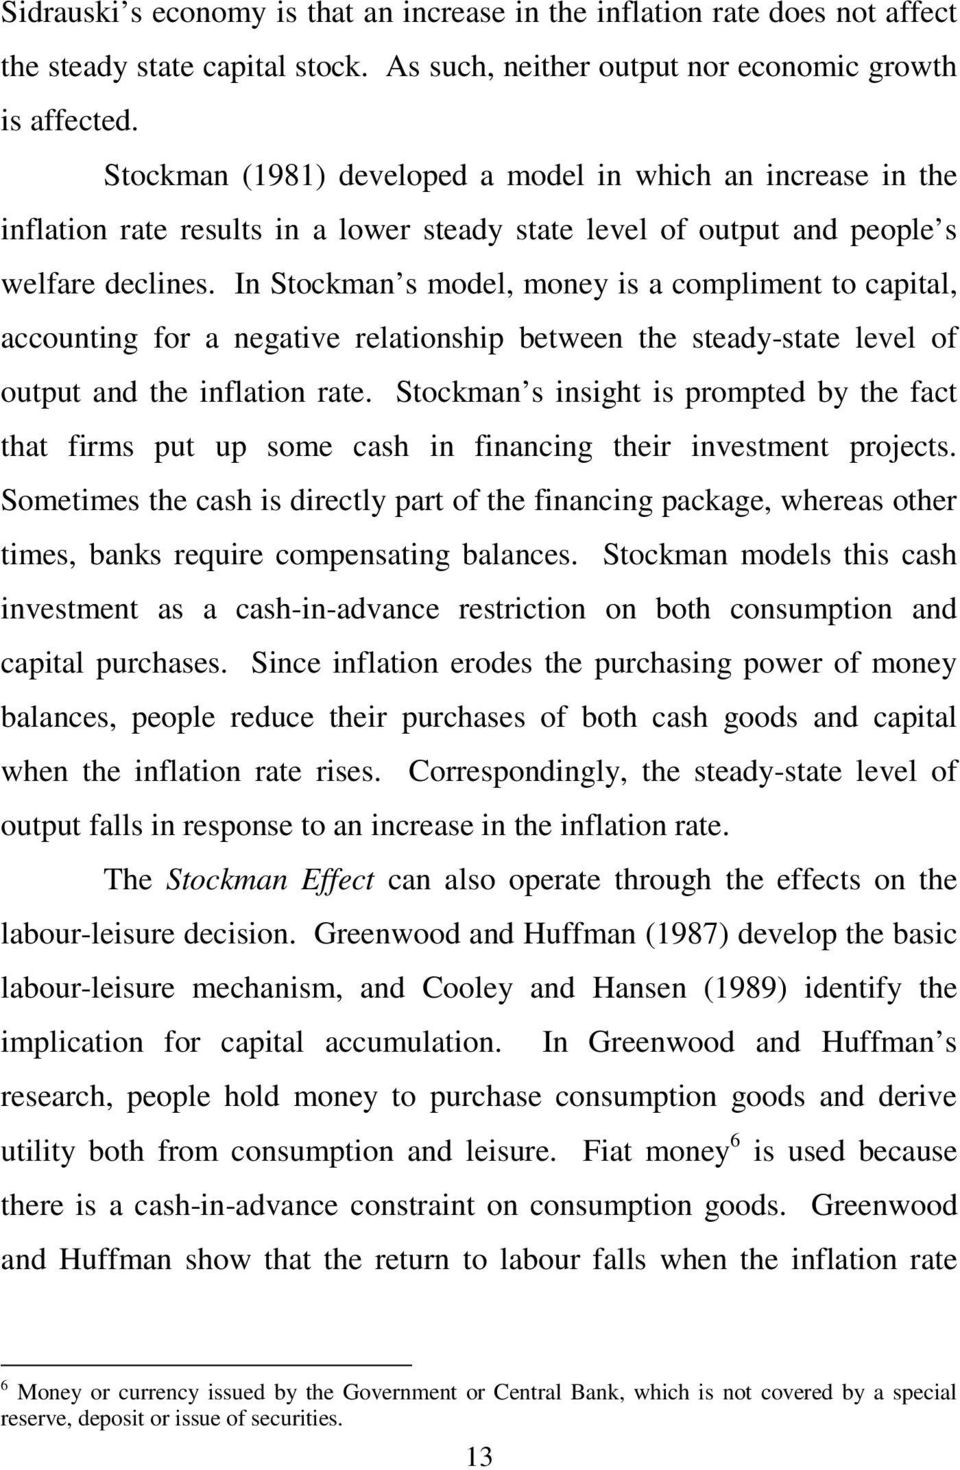 In Stockman s model, money is a compliment to capital, accounting for a negative relationship between the steady-state level of output and the inflation rate.